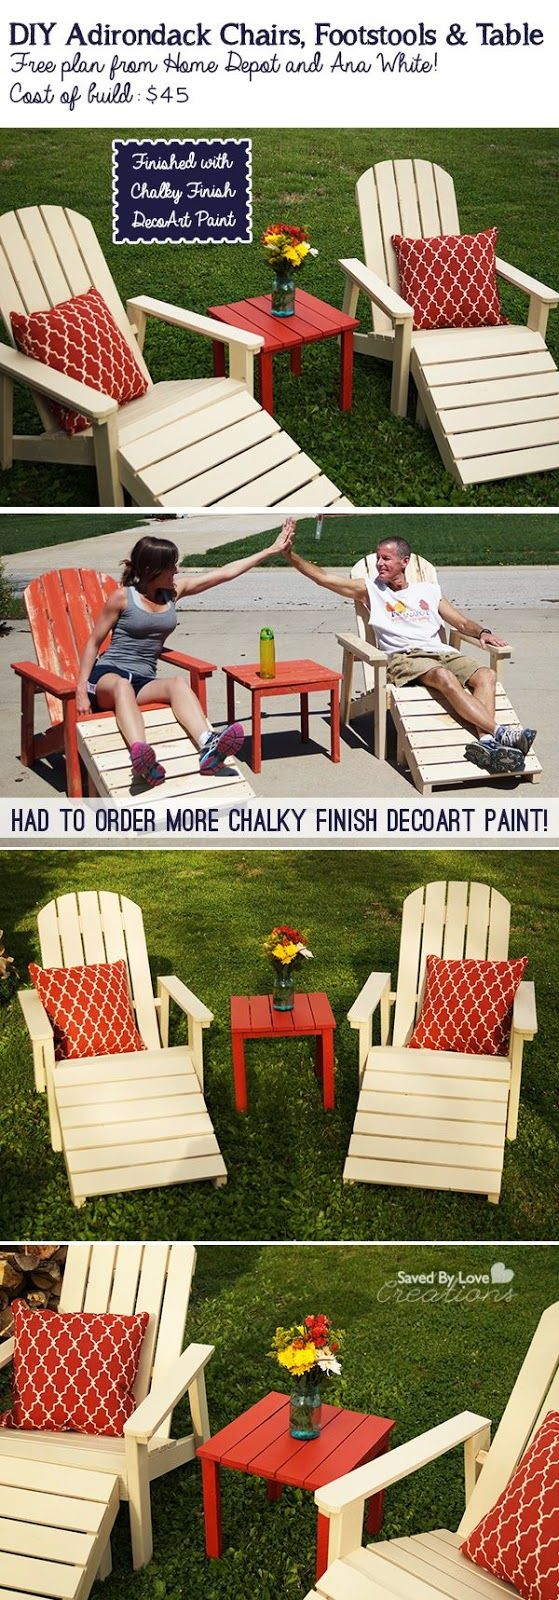 DIY Adirondack Outdoor Furniture Plan | Projects | Pinterest ...